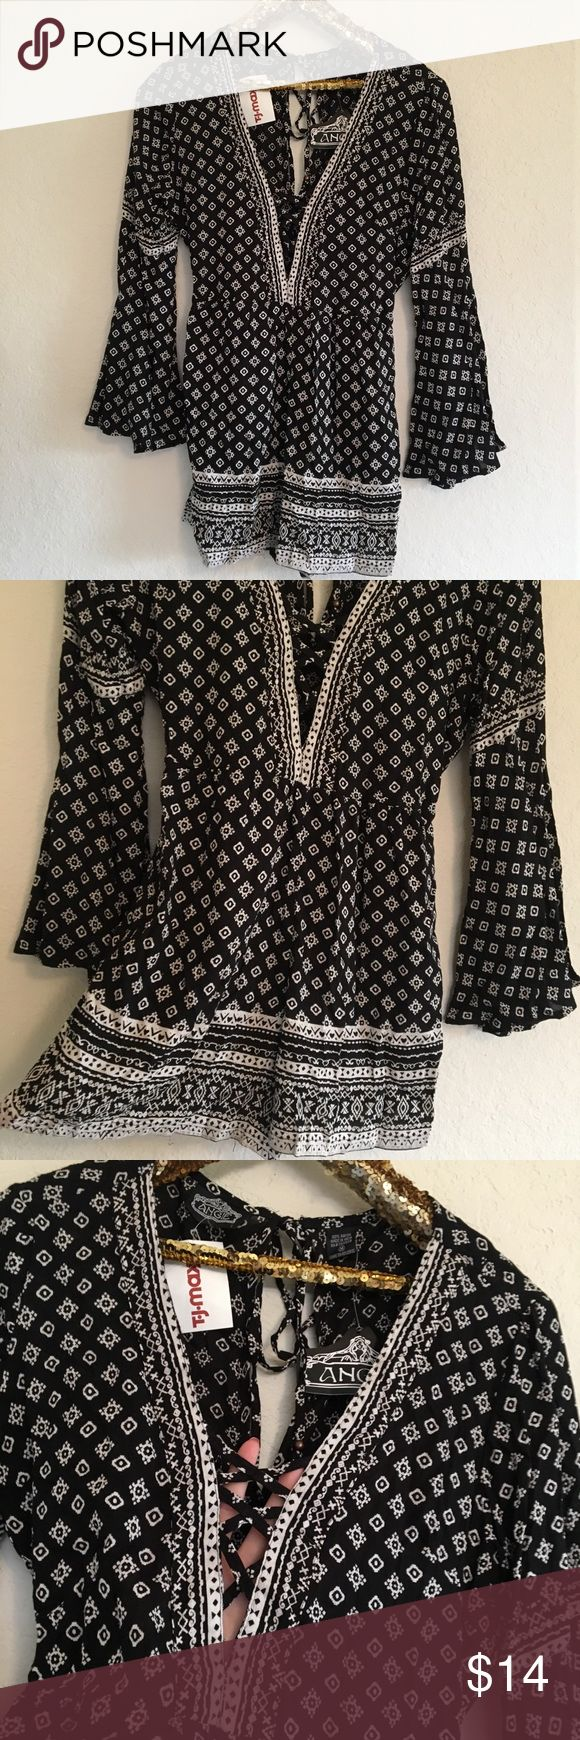 NWT Angie Black and White Romper This brand new Angie black and white romper is so stylish and great for spring and summer. It has an elastic waistband and even has pockets!  🚭 From a smoke-free home ❌ No trades or off PoshMark sales 🛍 Bundles welcome and encouraged 👌🏻 Reasonable offers welcome ⚡️ Same/next day shipping 🌬 All items are steamed before shipping Angie Pants Jumpsuits & Rompers